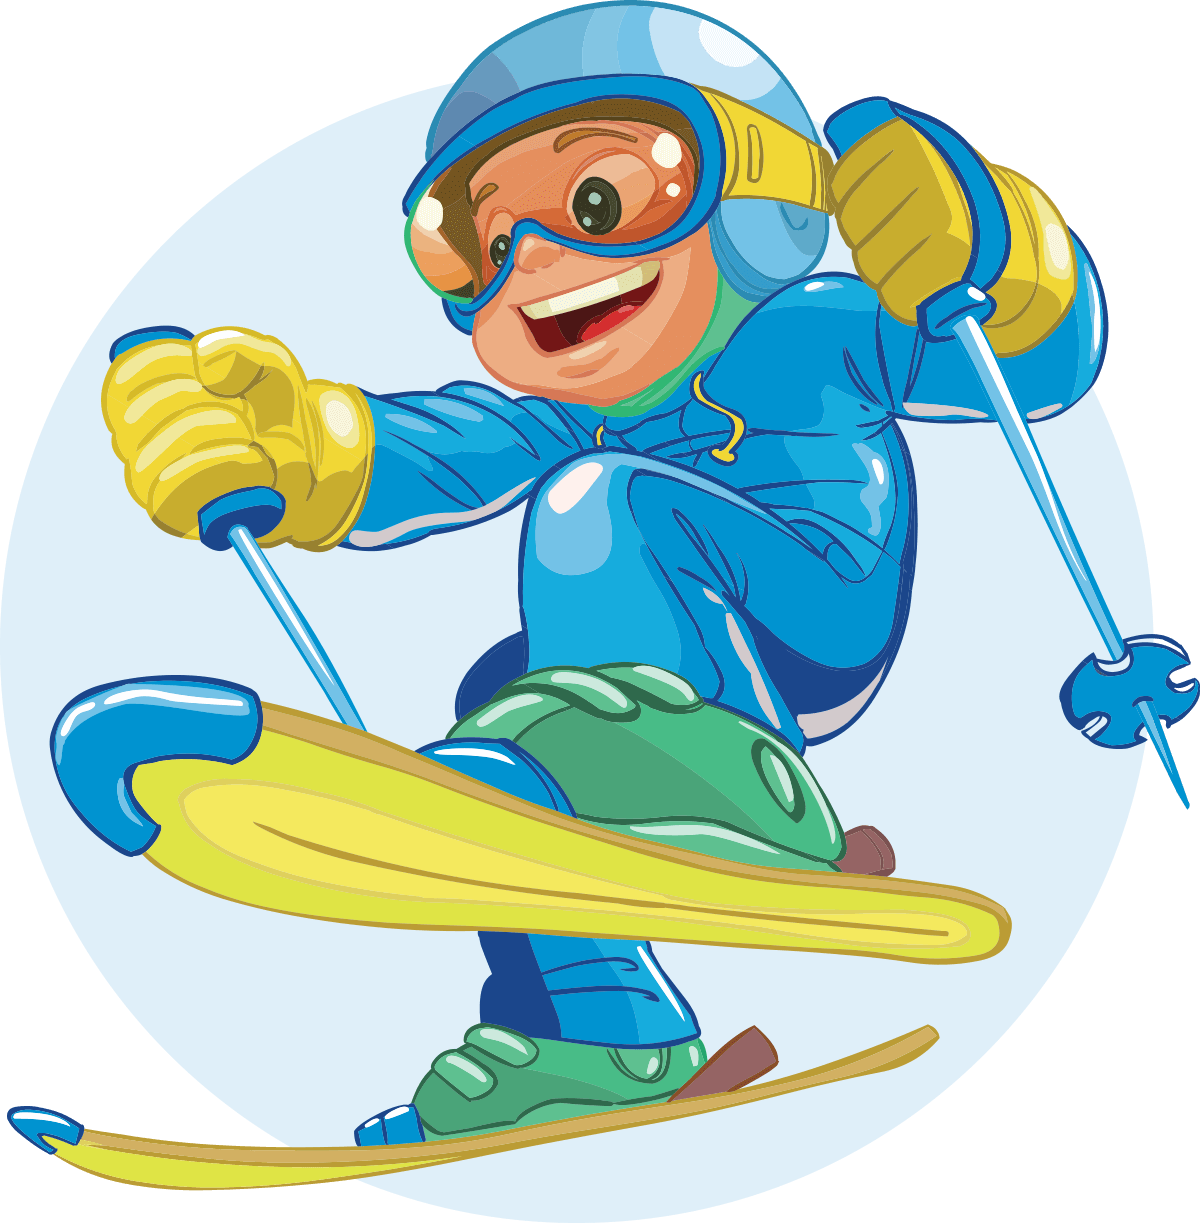 DEAL!! KIDS LEARN TO SKI FREE*, INCLUDING ALL EQUIPMENT, LESSONS.